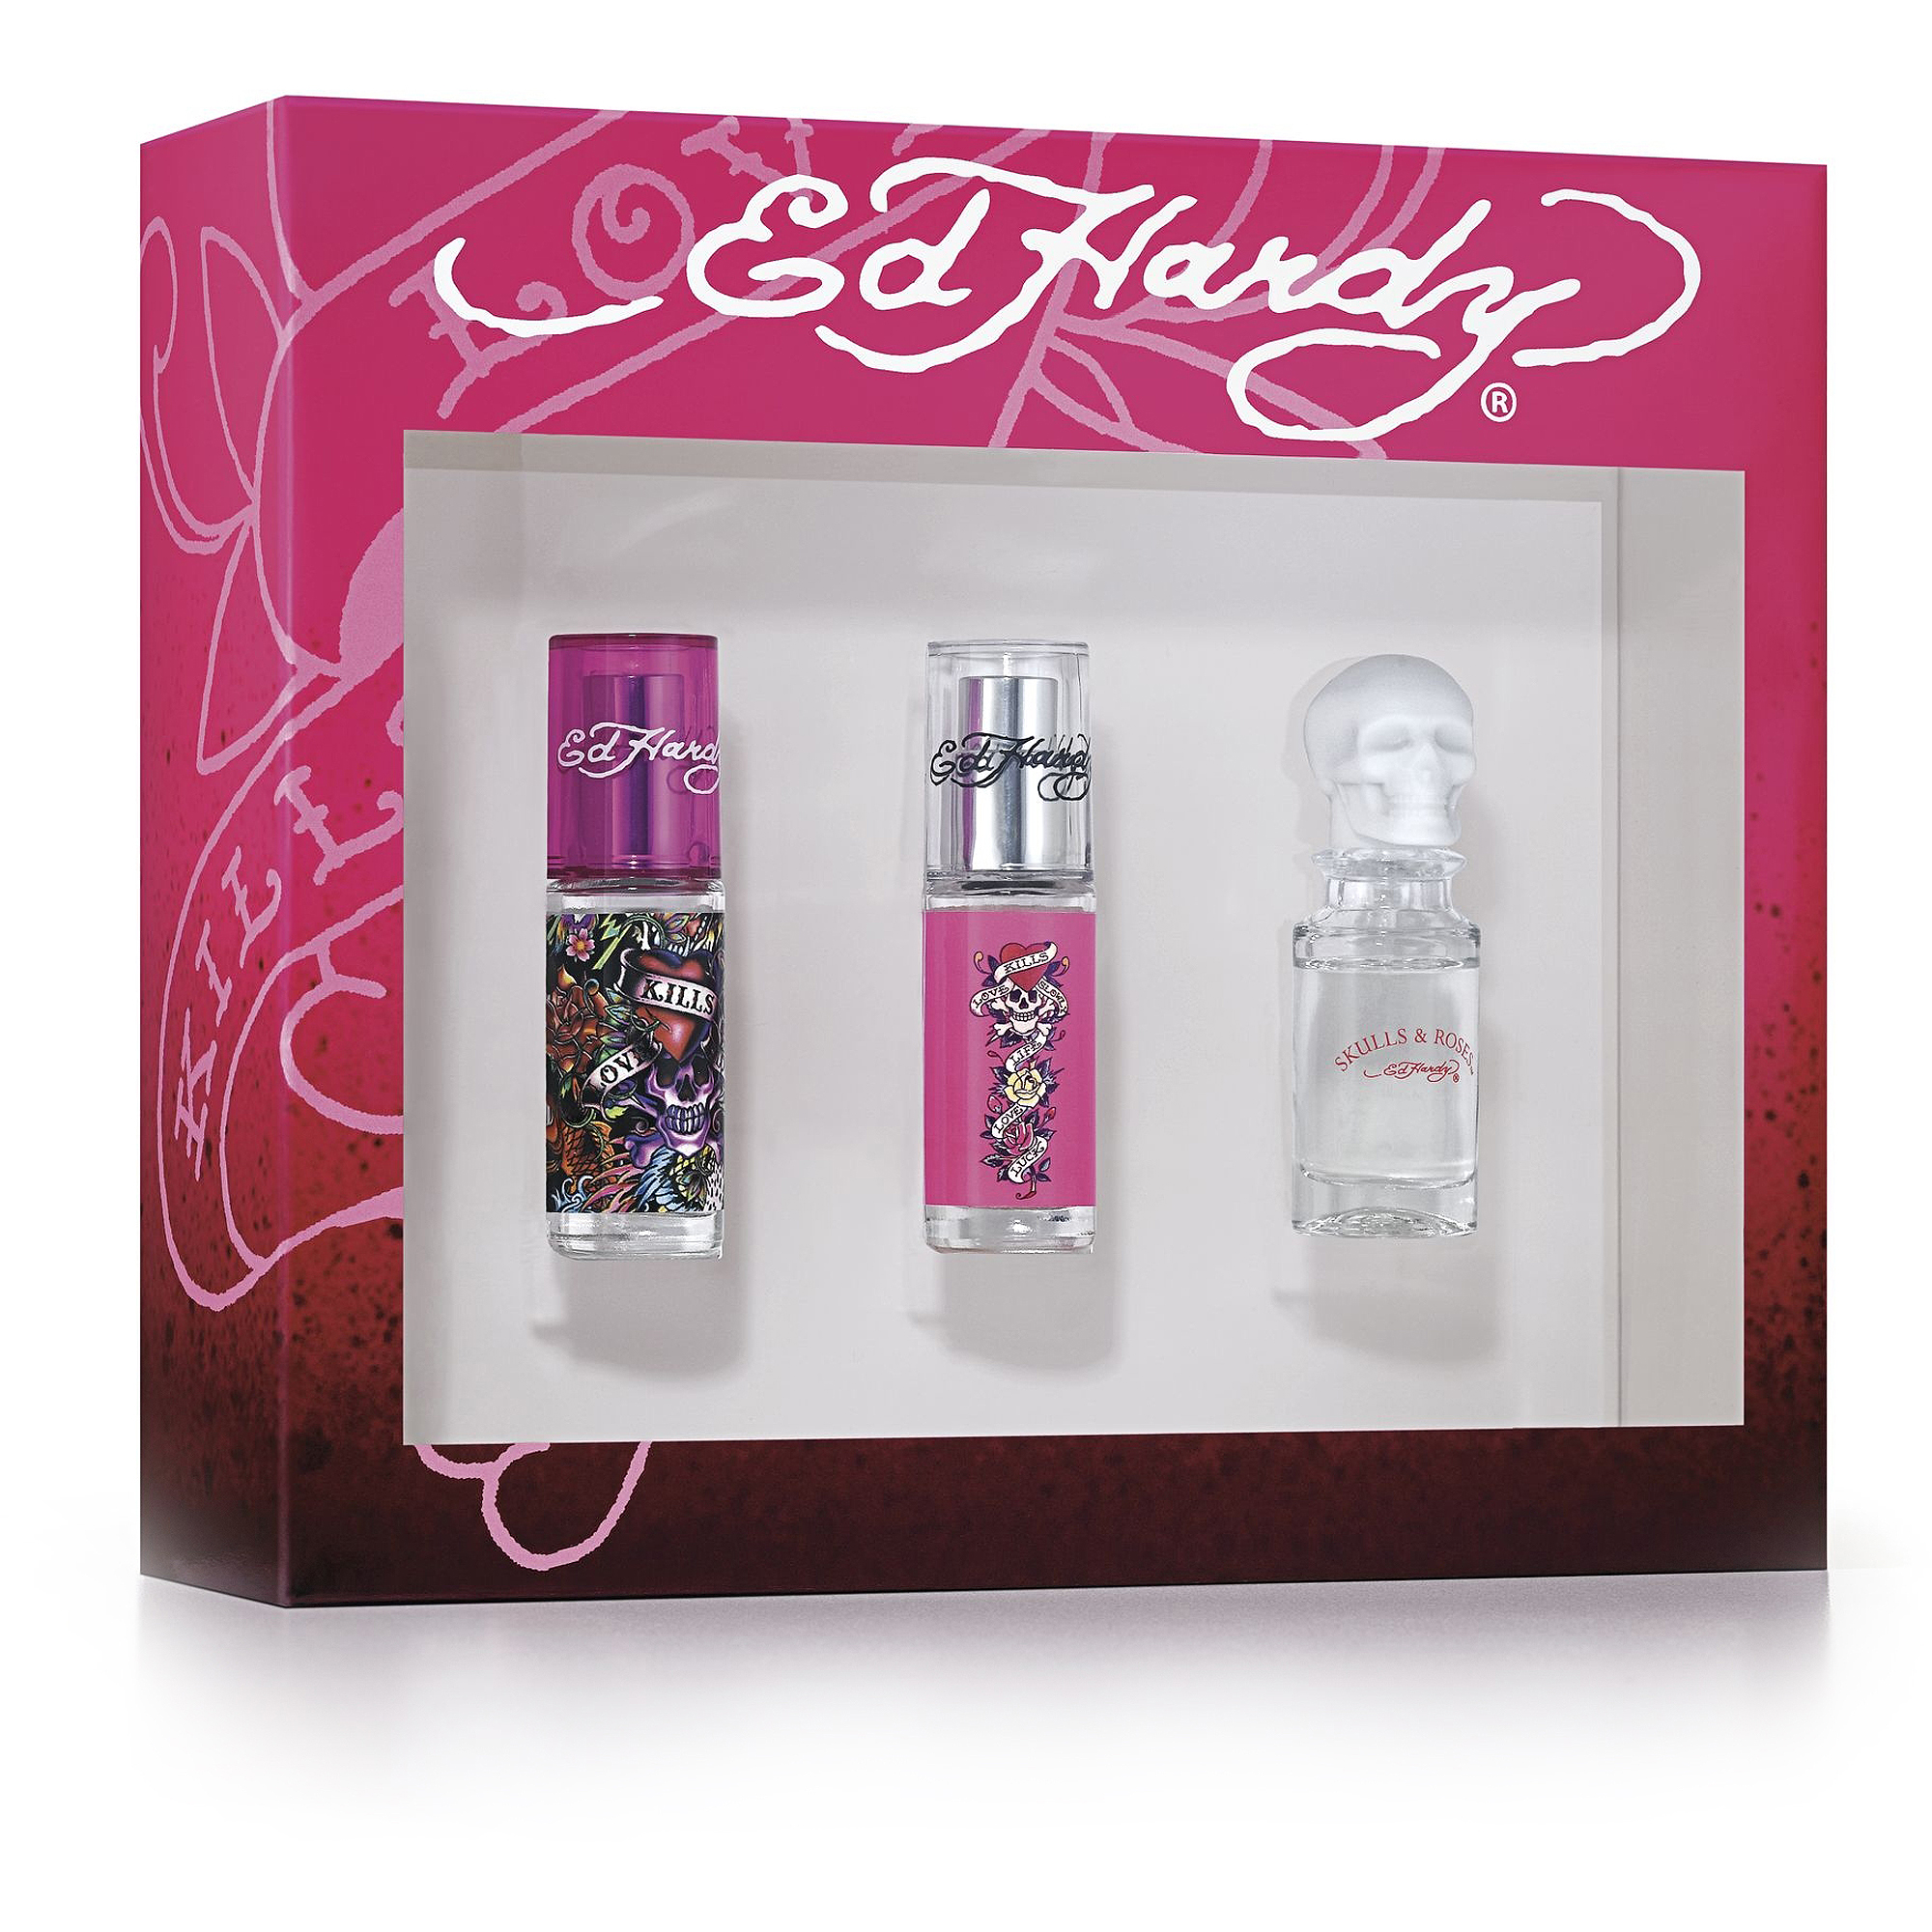 Ed Hardy Variety 3 Pc Gift Set ( Eau De Parfum Spray 0.25 Oz Of Ed Hardyhearts & Daggers   Skulls & Roses ) for Women by Christian Audigier